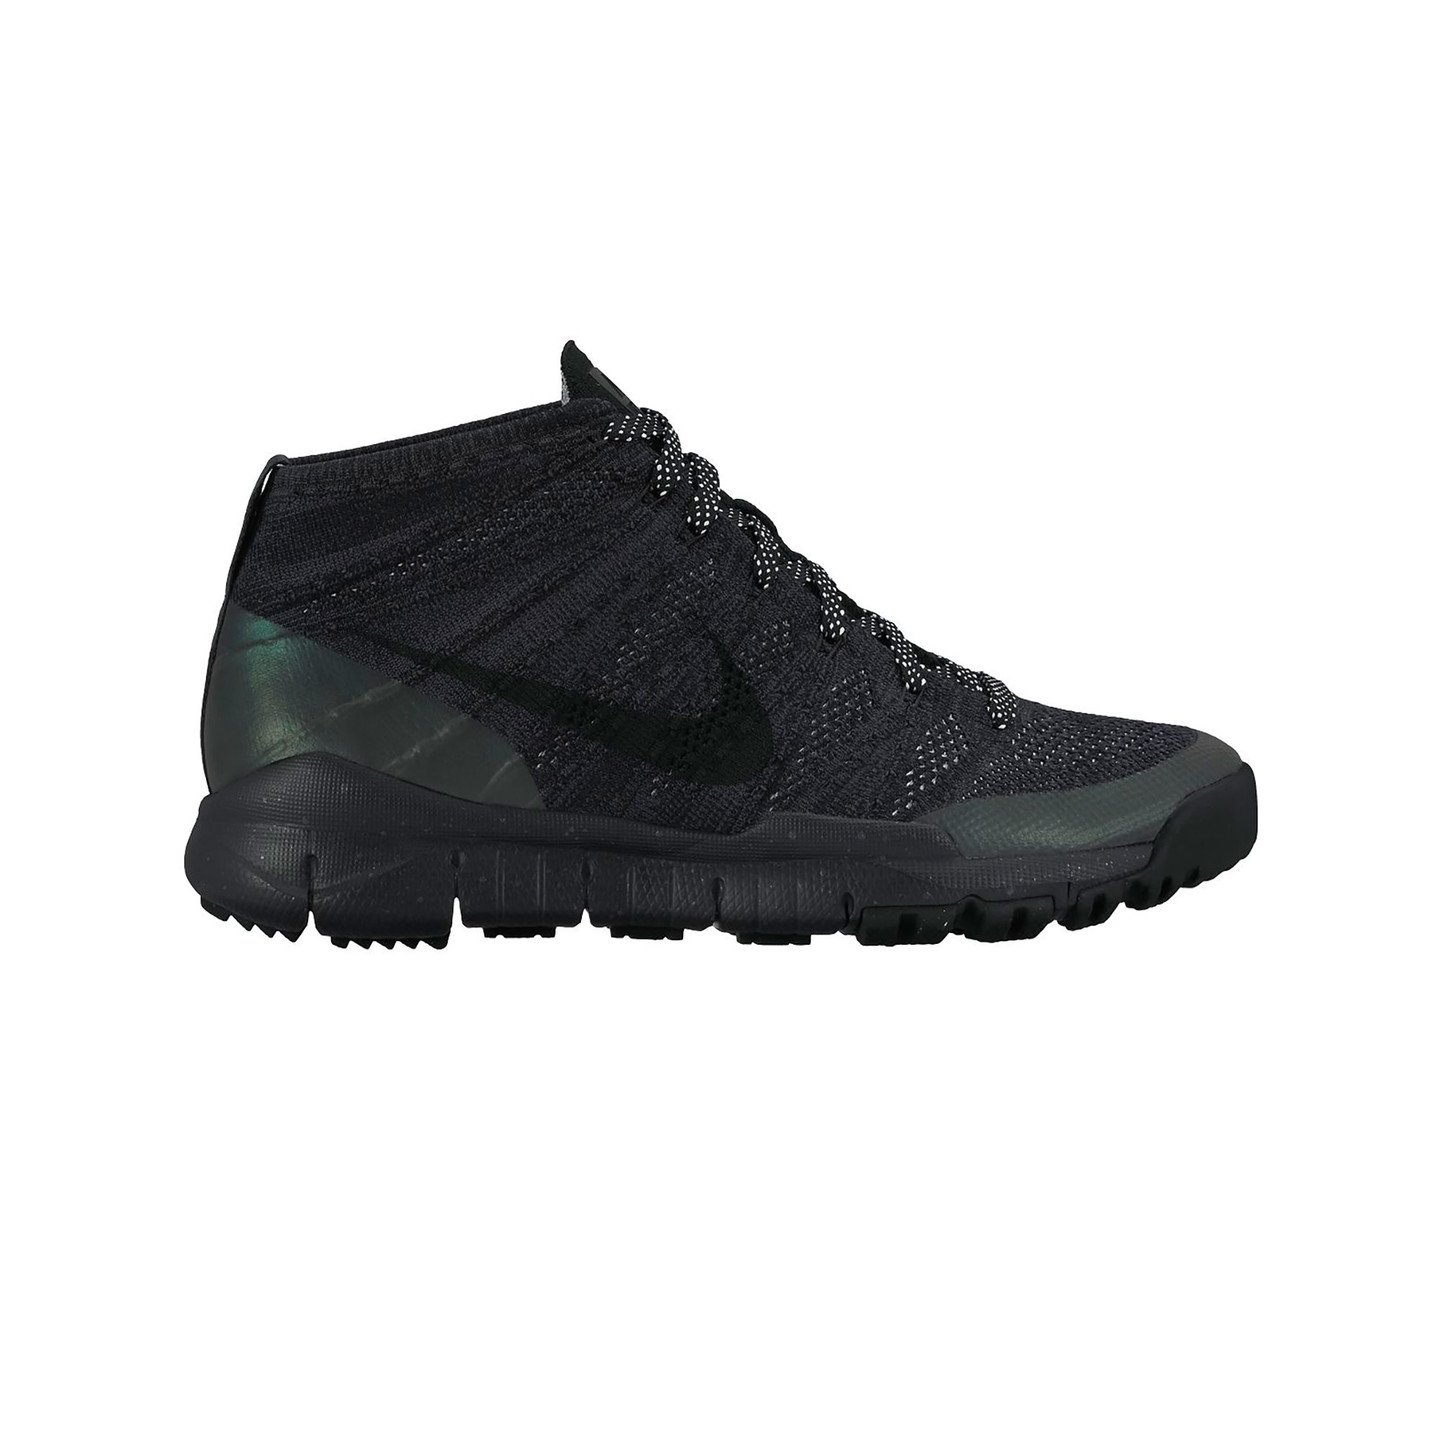 Nike Flyknit Trainer Chukka Sneakerboot Black / Anthracite 805092-001-43